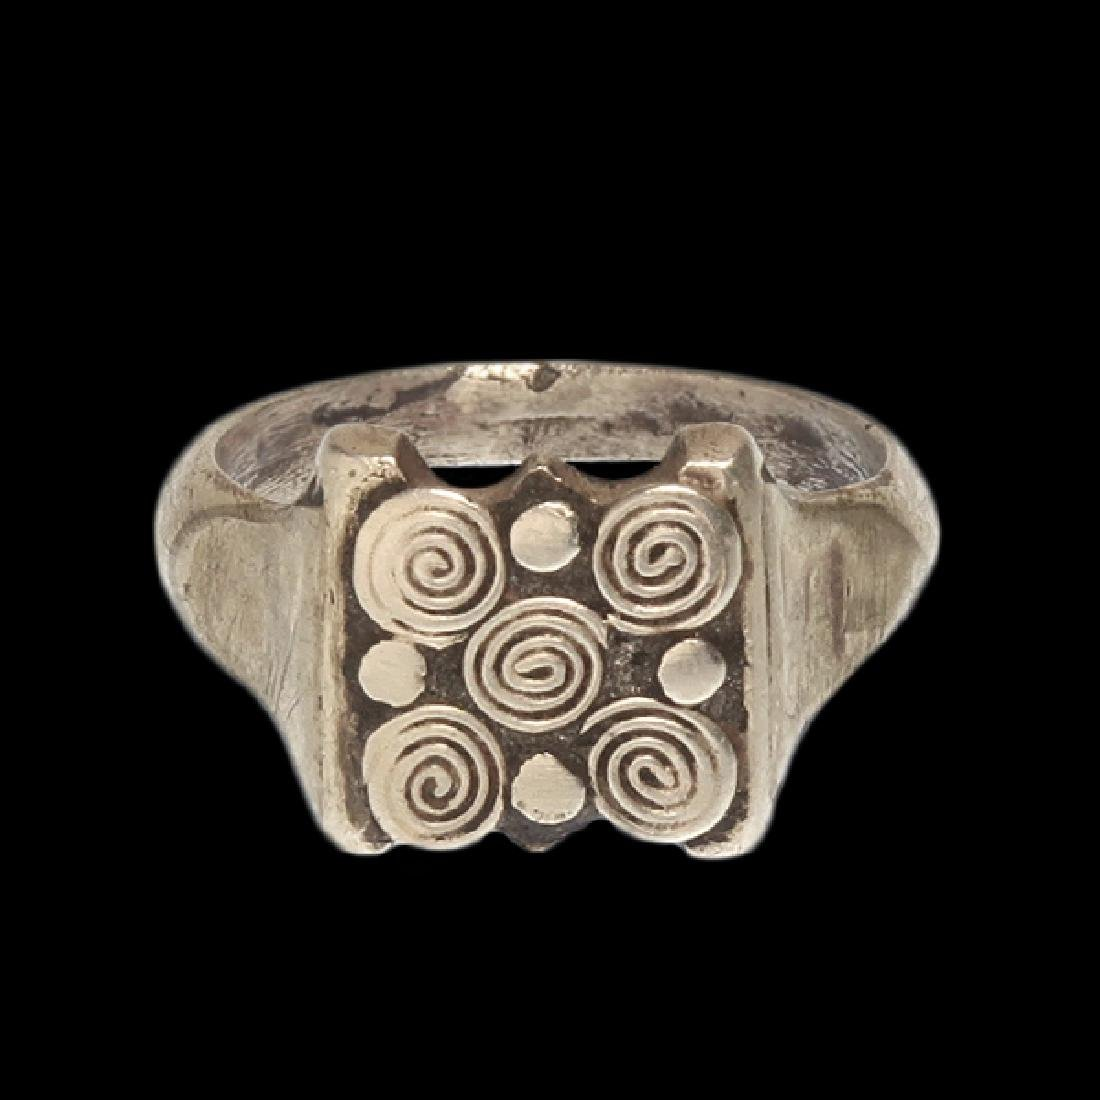 Viking Silver Ring with Spiral Patterns, c. 10th - 2